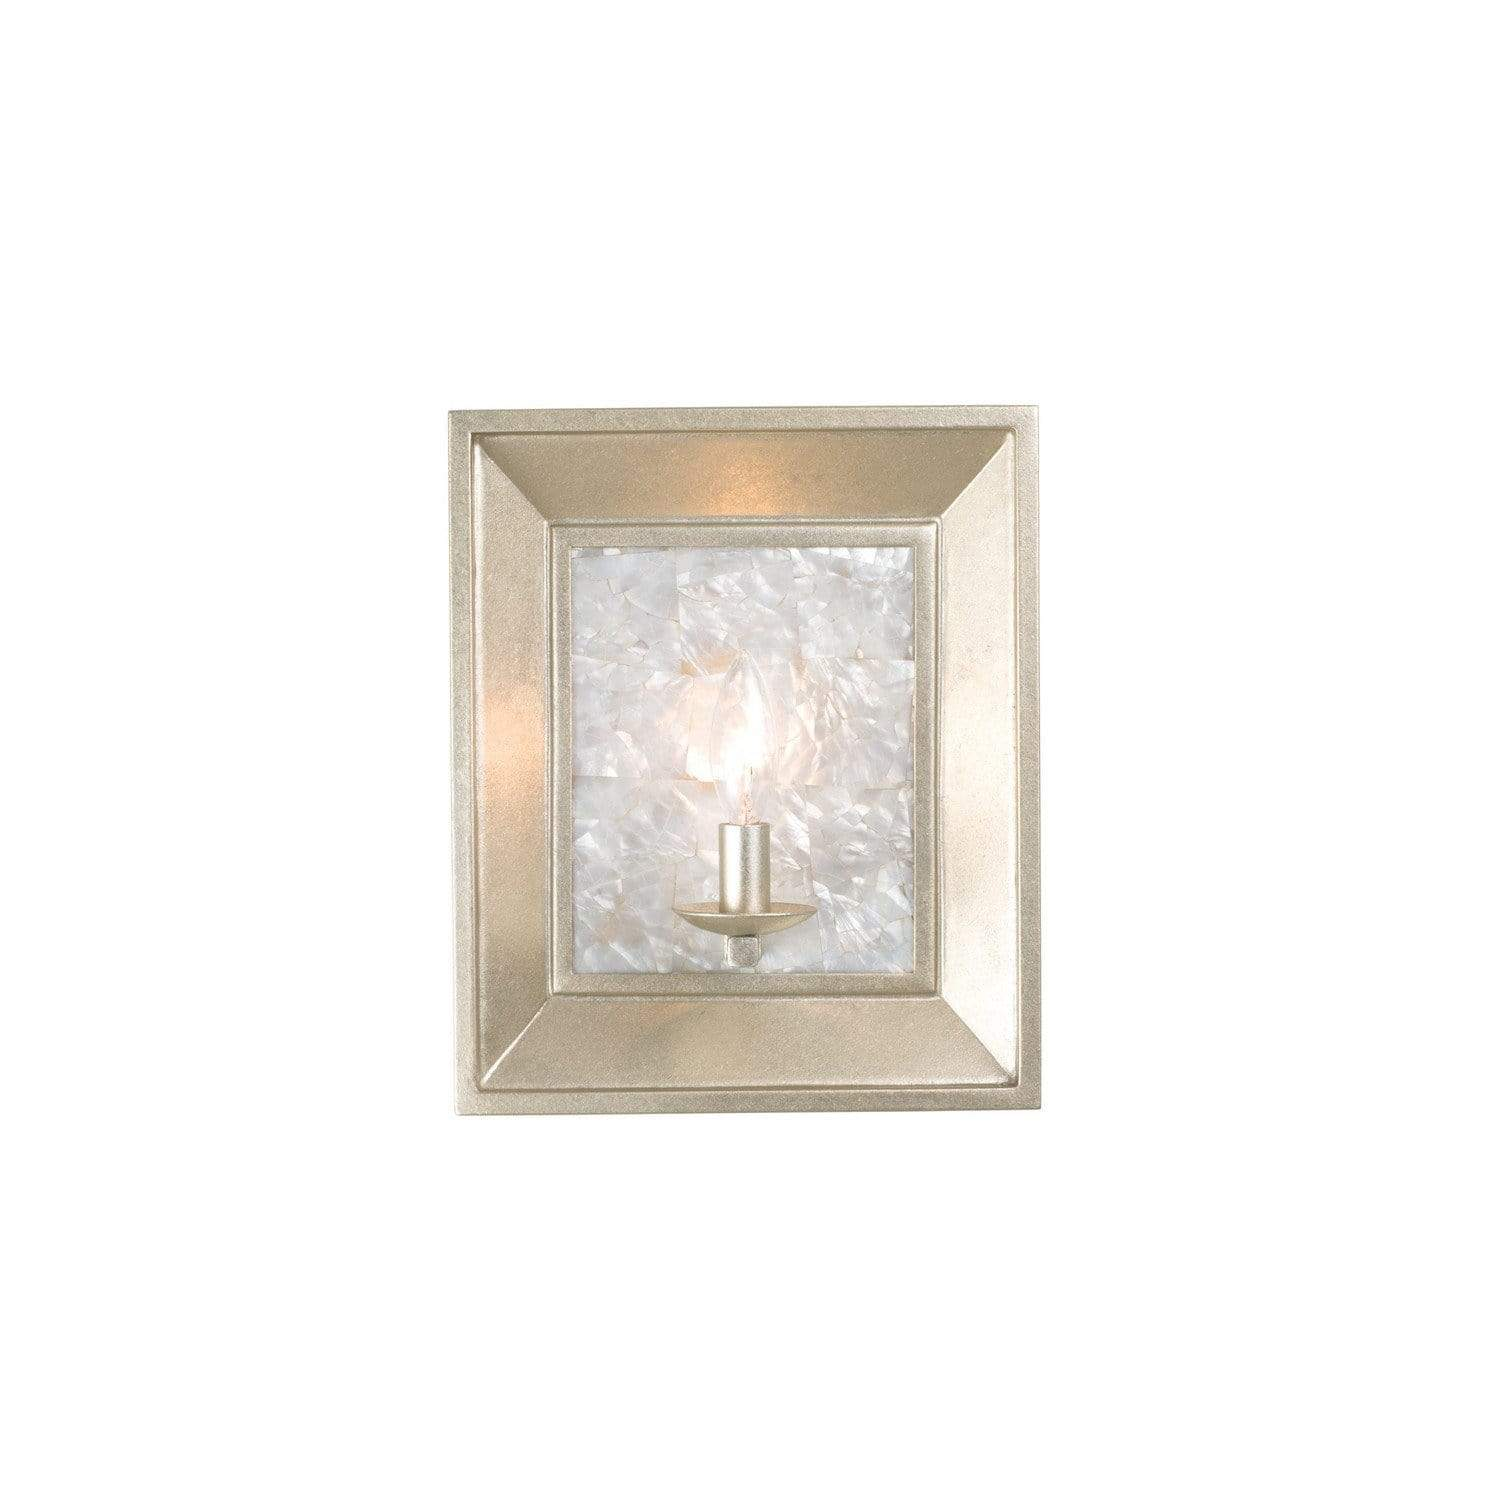 Kalco Lighting Wall Sconces Warm Silver Hayworth 1 Light Ada Wall Sconce By Kalco Lighting 505720